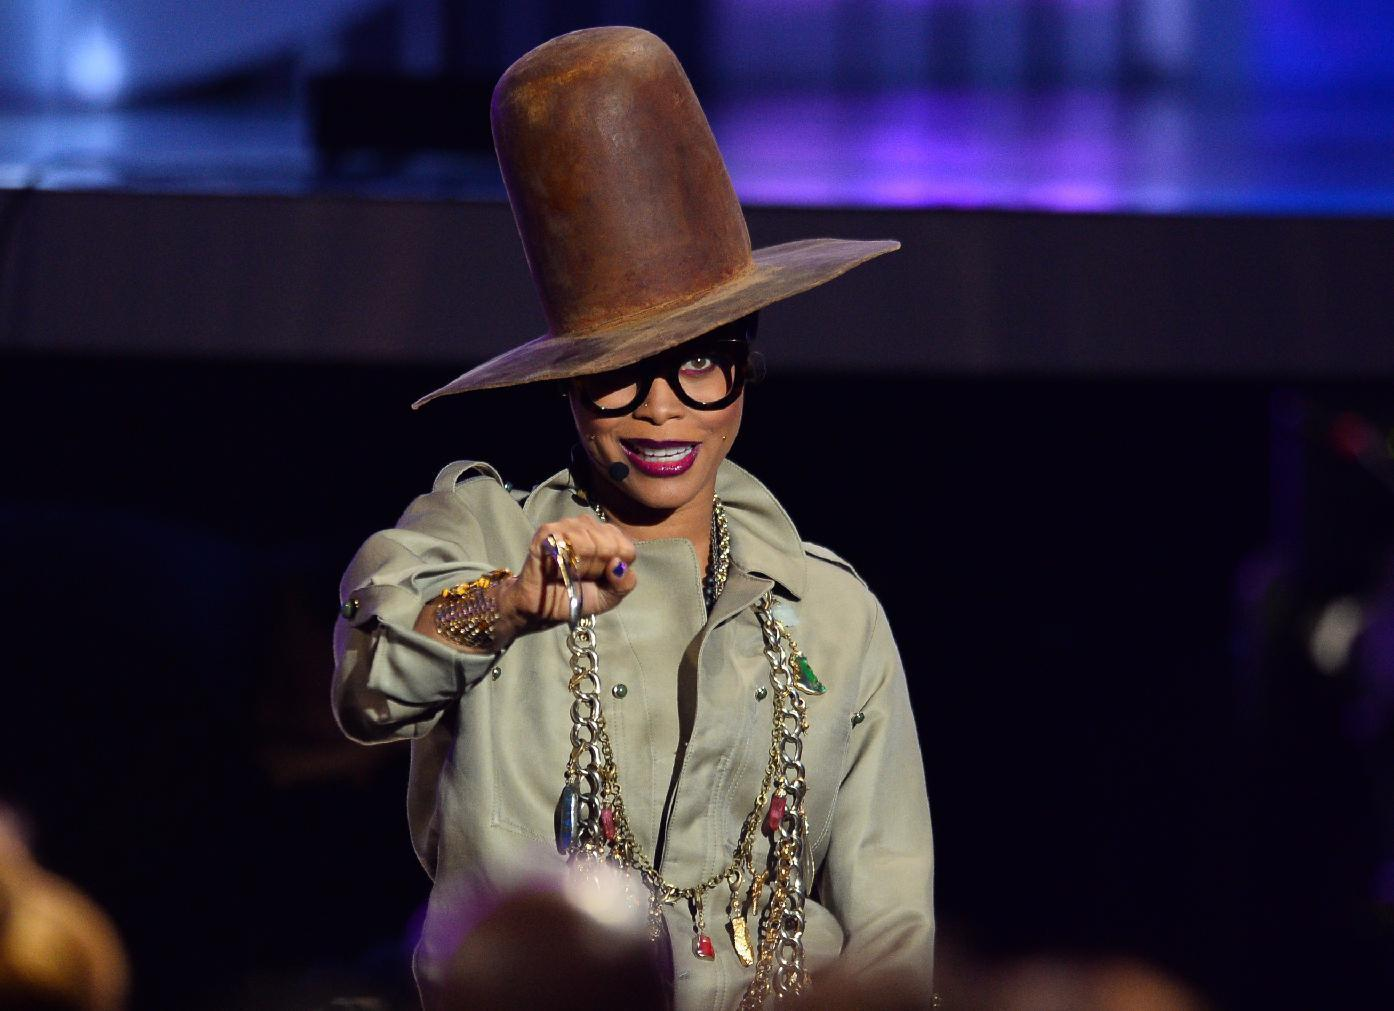 No time for wardrobe changes as Badu does Soul Train, music